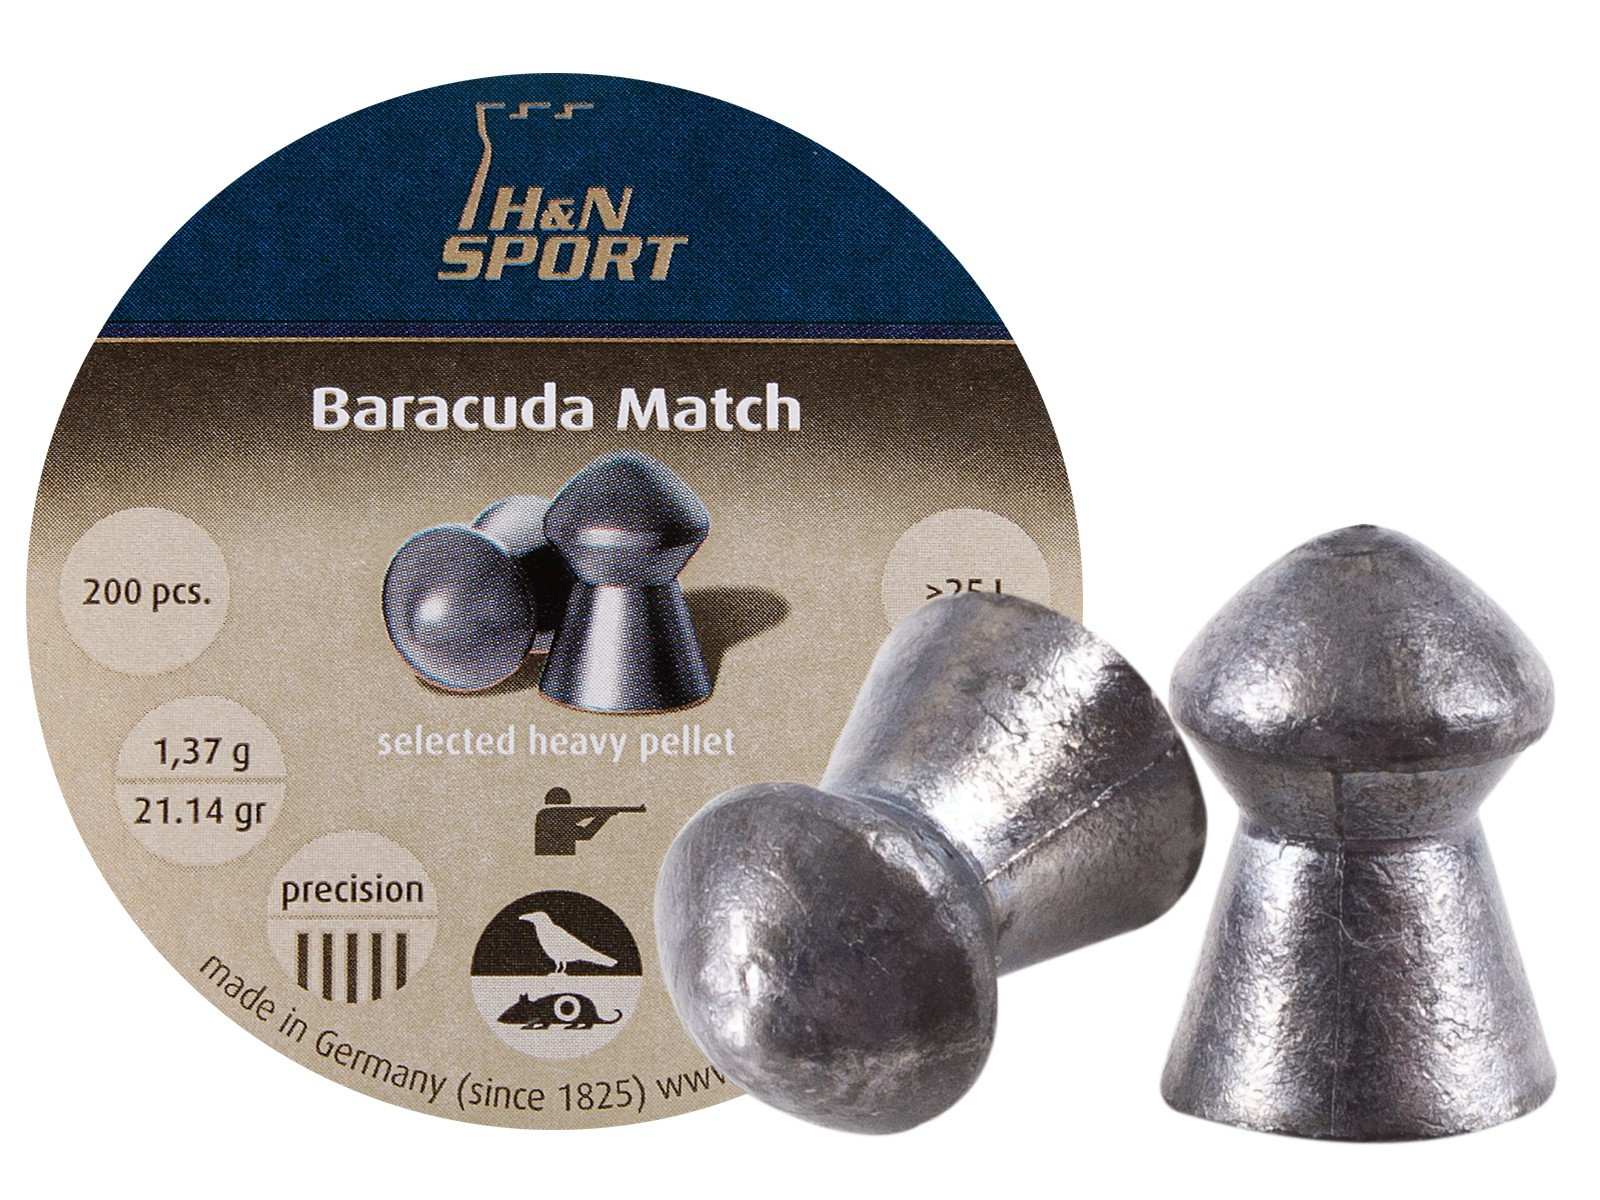 H&N Baracuda Match (5.53mm) .22 Cal, 21.14 gr - 200 ct